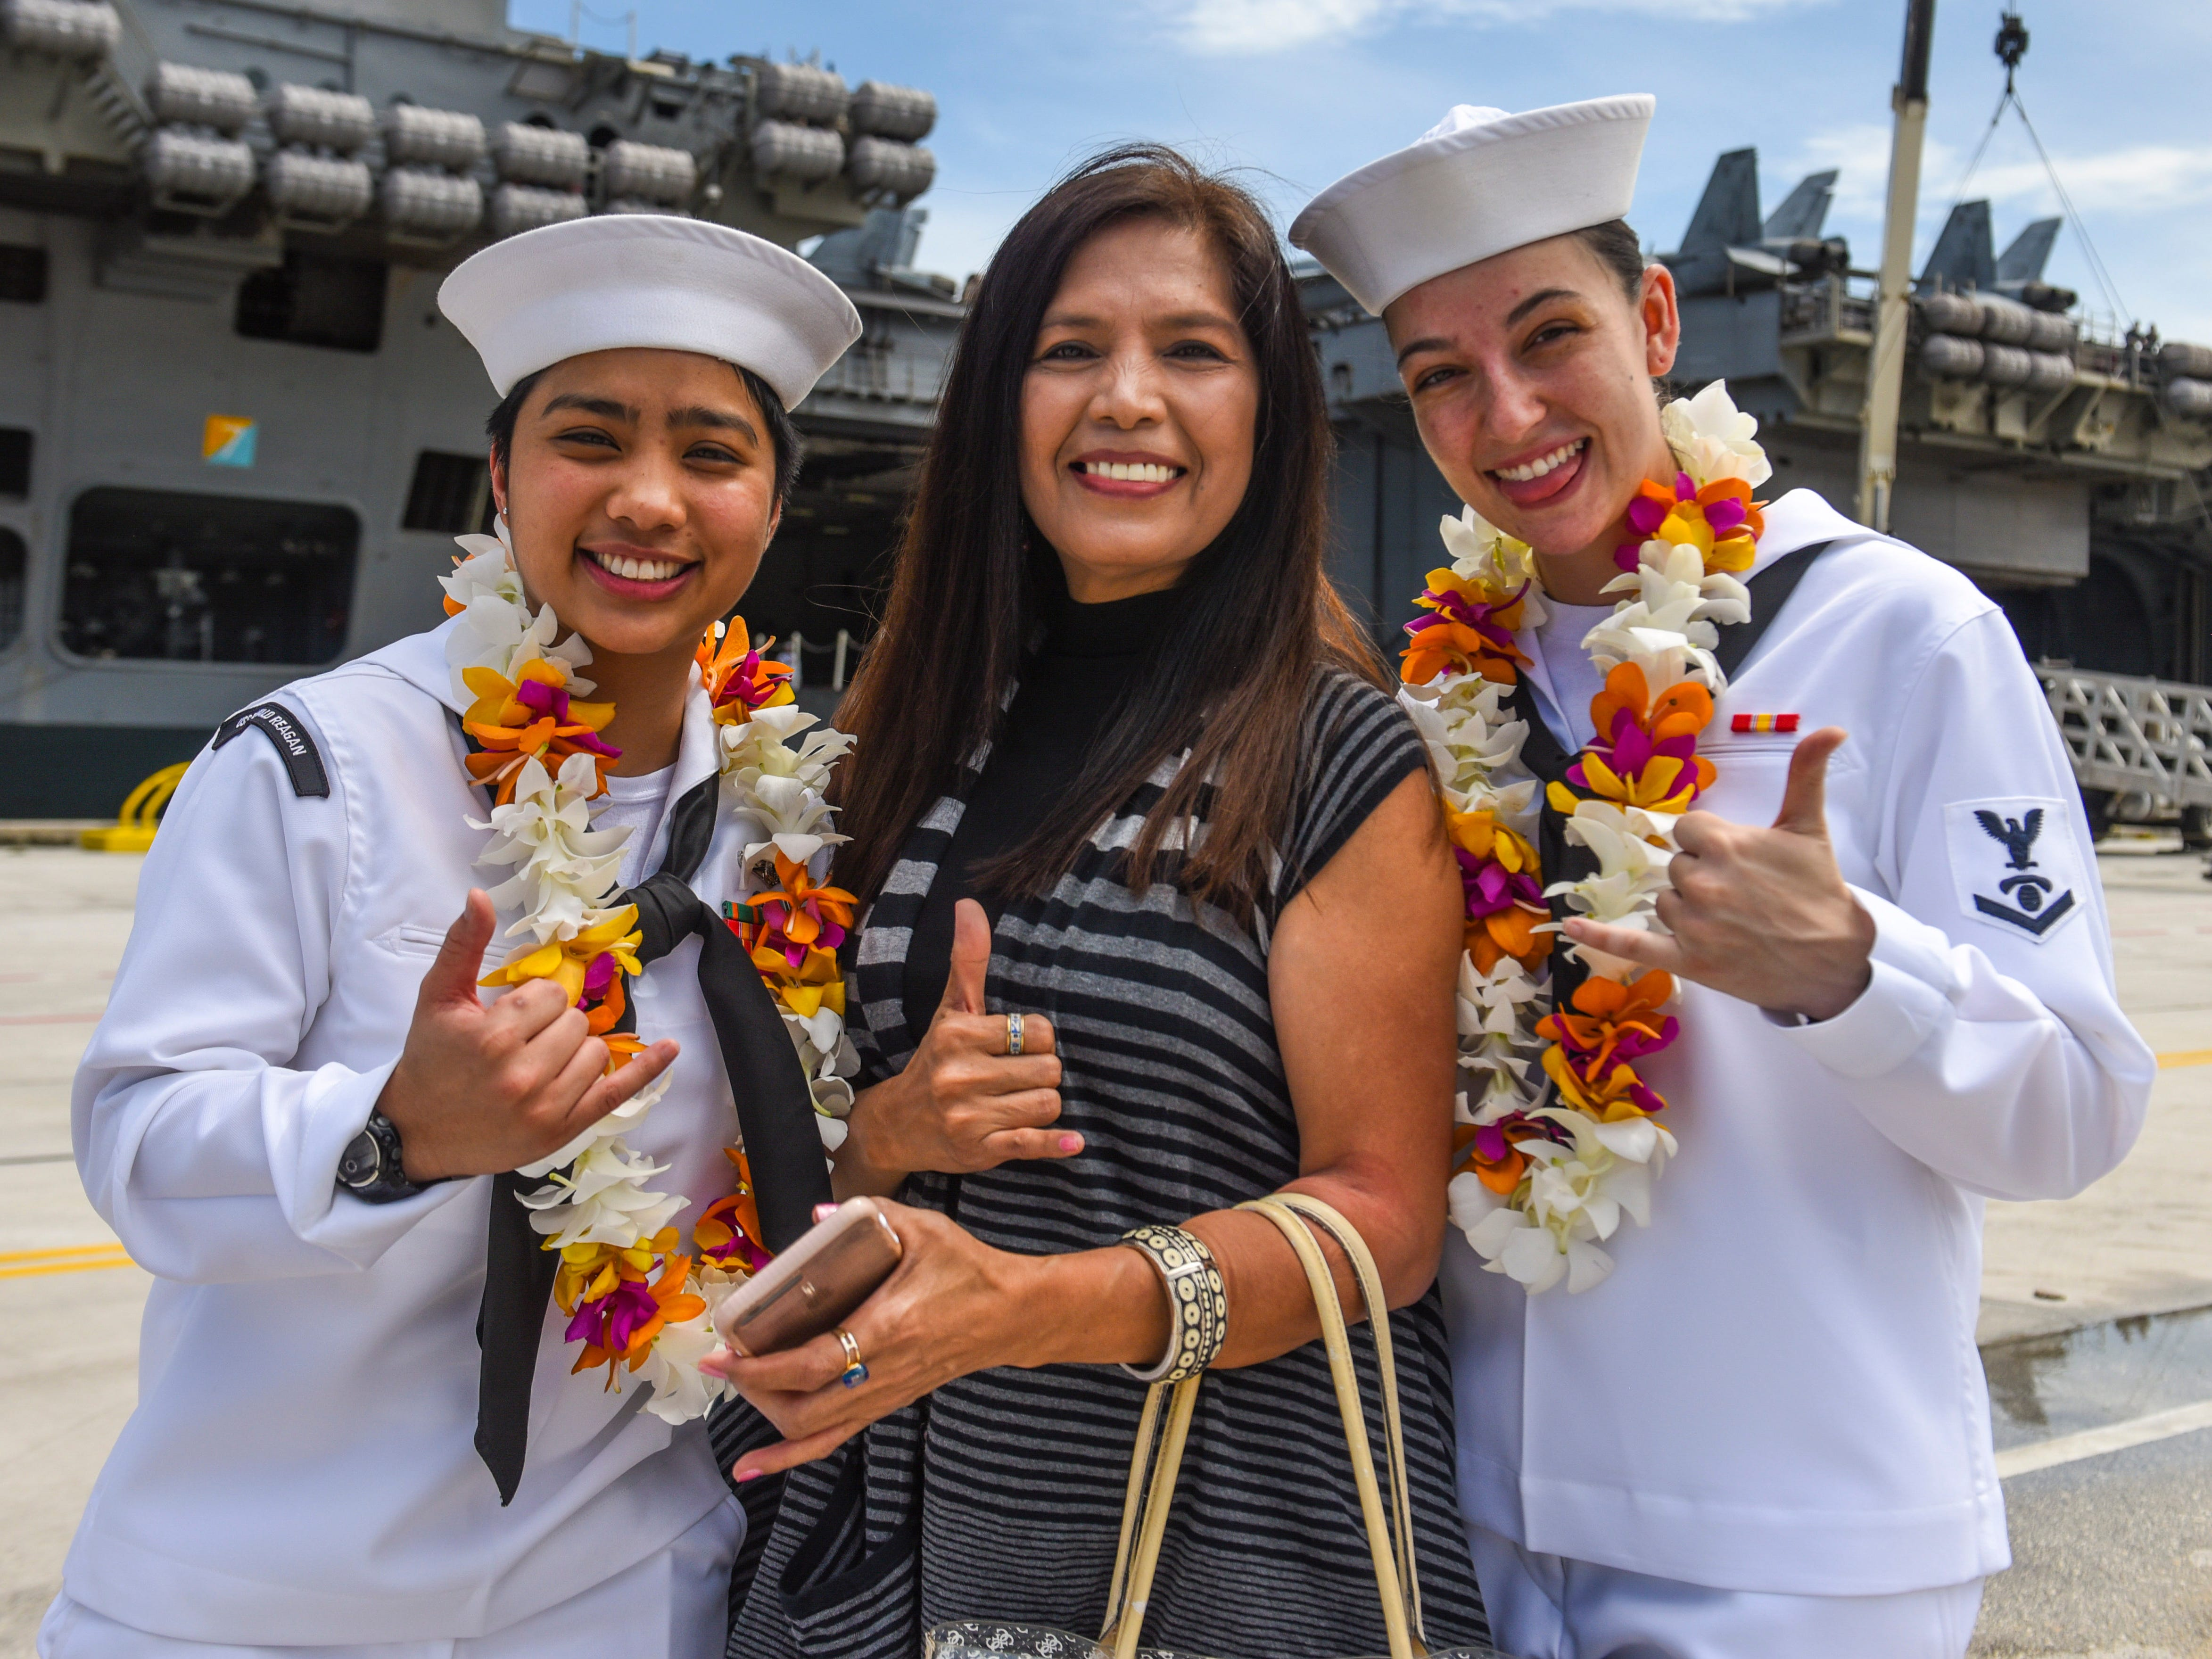 Janet Steele, center, is flanked by her niece, Petty Officer 2nd Class Jeanalynn Samson, left, and Petty Officer 3rd Class Stephanie Walsh, after the sailors' arrival aboard the Nimitz-class nuclear-powered aircraft carrier, USS Ronald Reagan, at the Kilo Wharf on Naval Base Guam in Sumay, on Monday, Sept. 24, 2018.